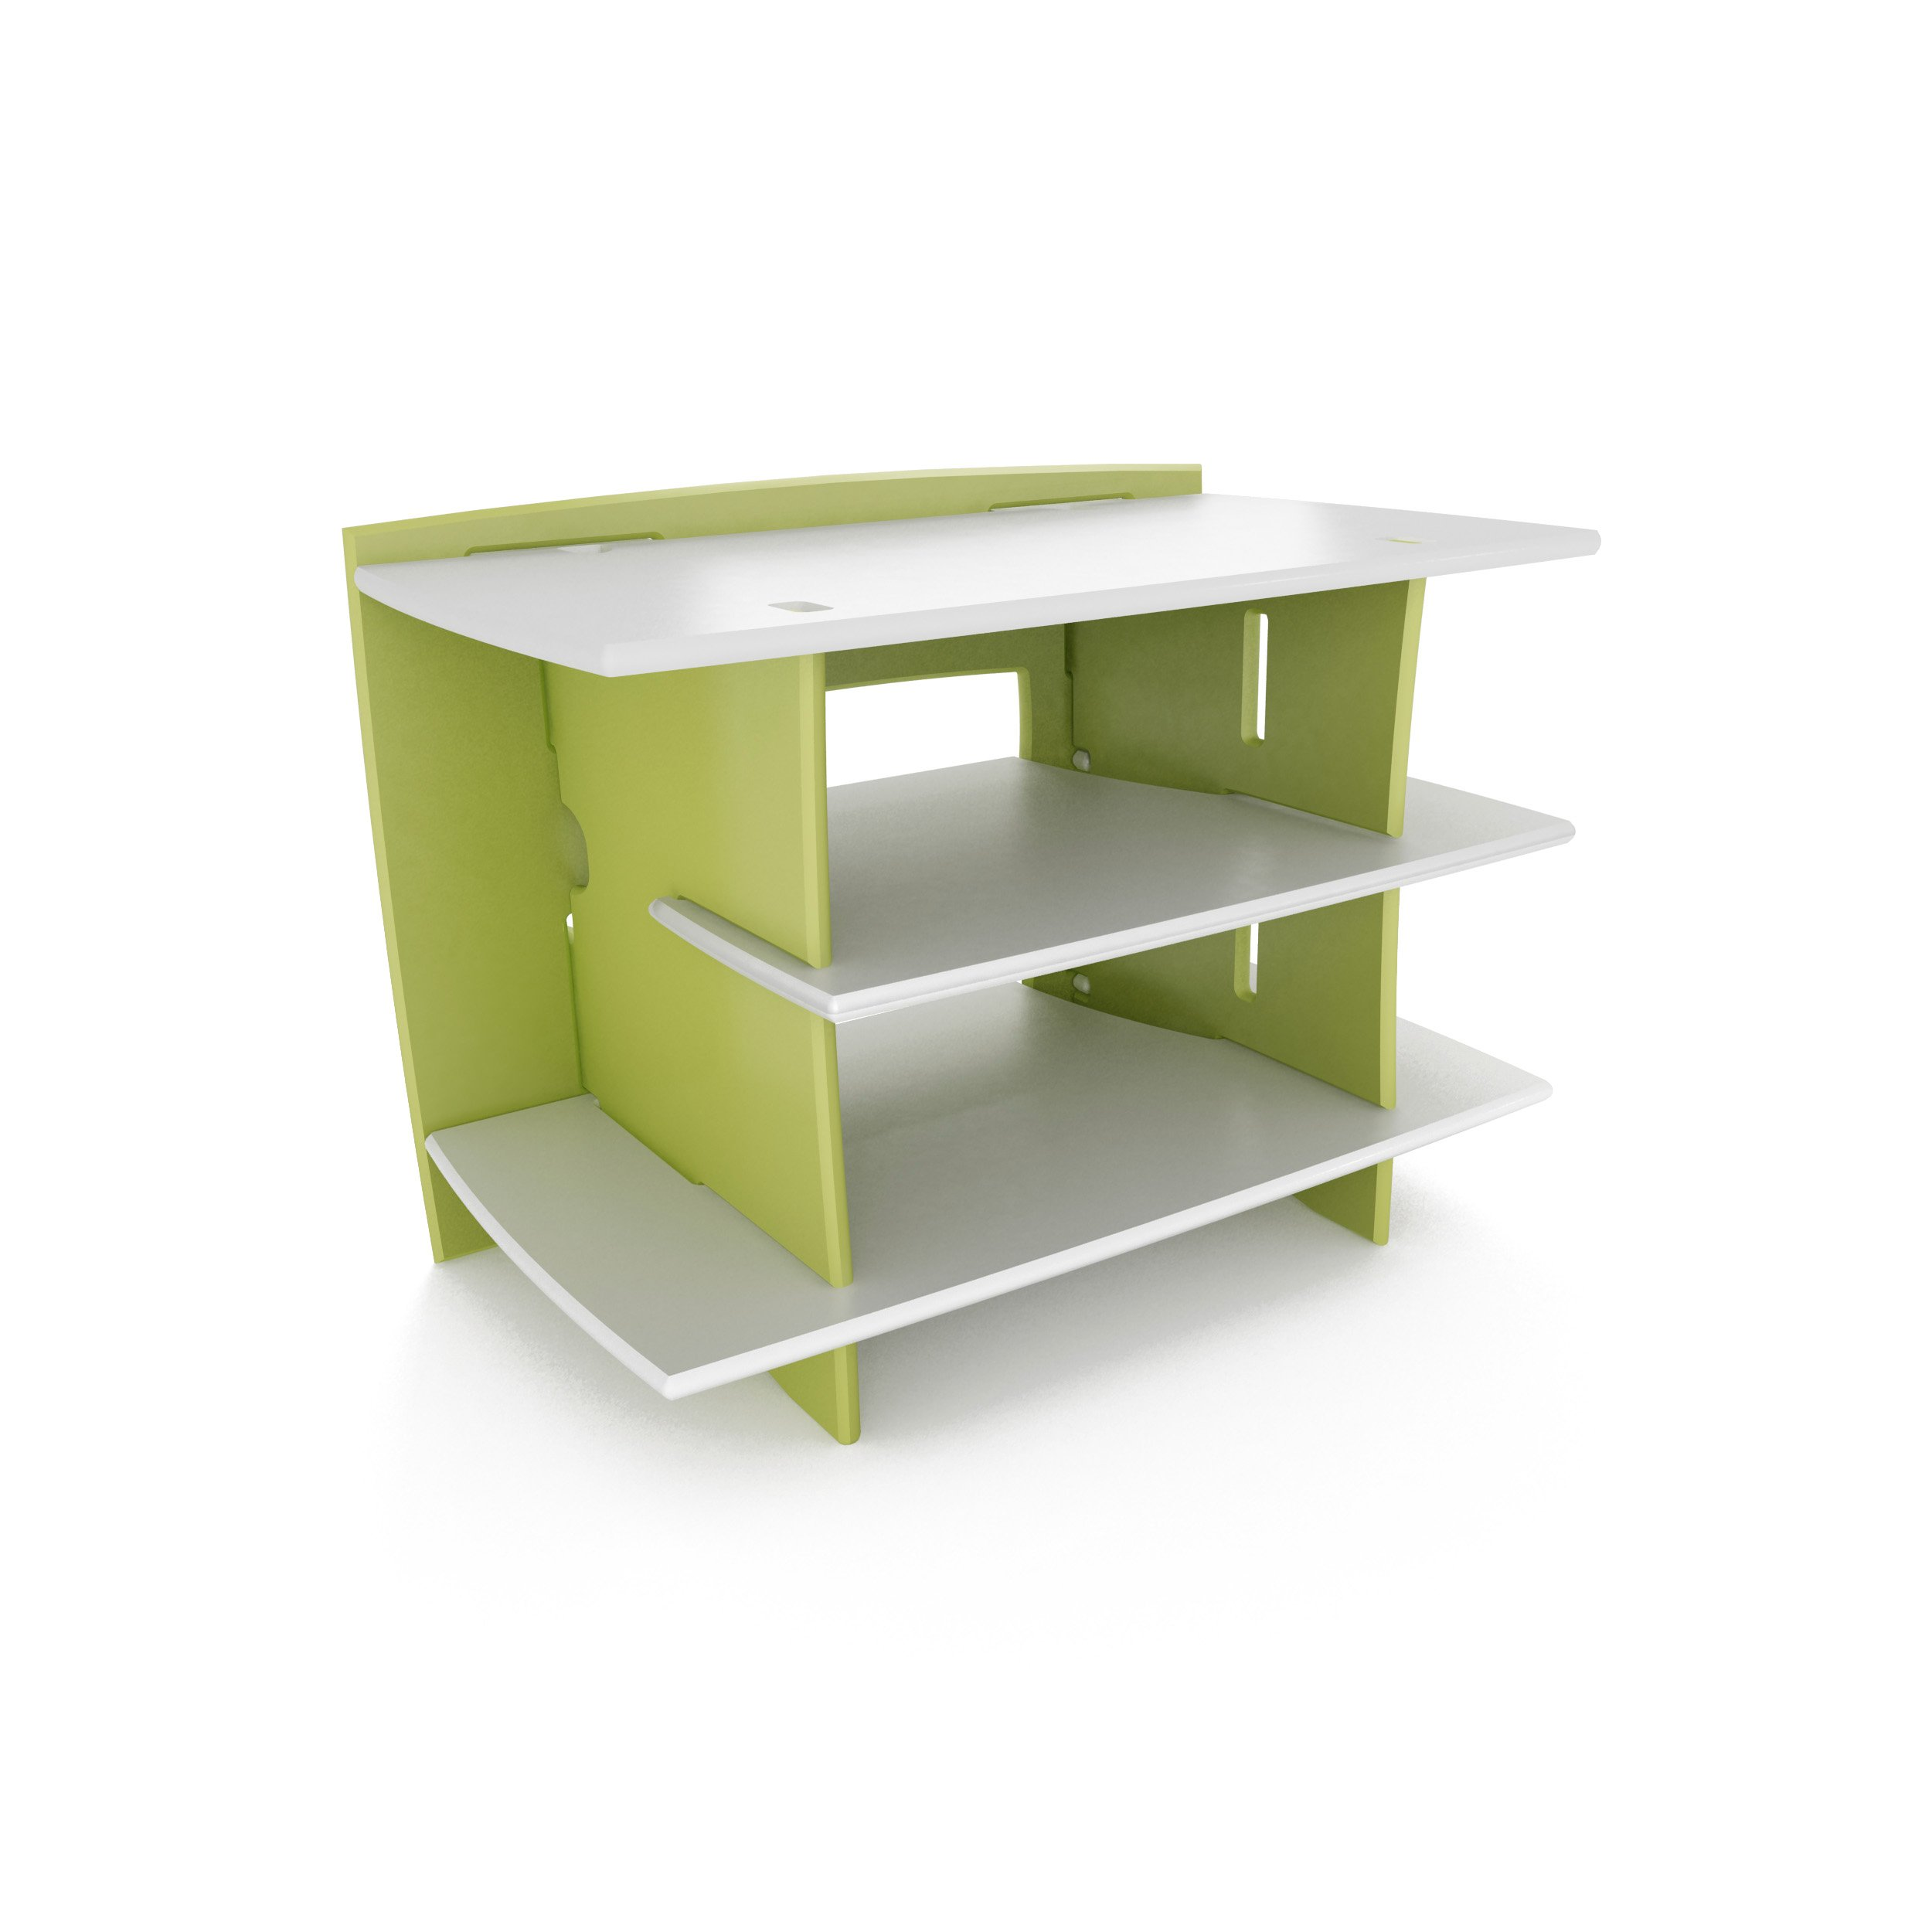 Legaré Kids Furniture Frog Series Collection, No Tools Assembly Gaming Center Stand, Lime Green and White